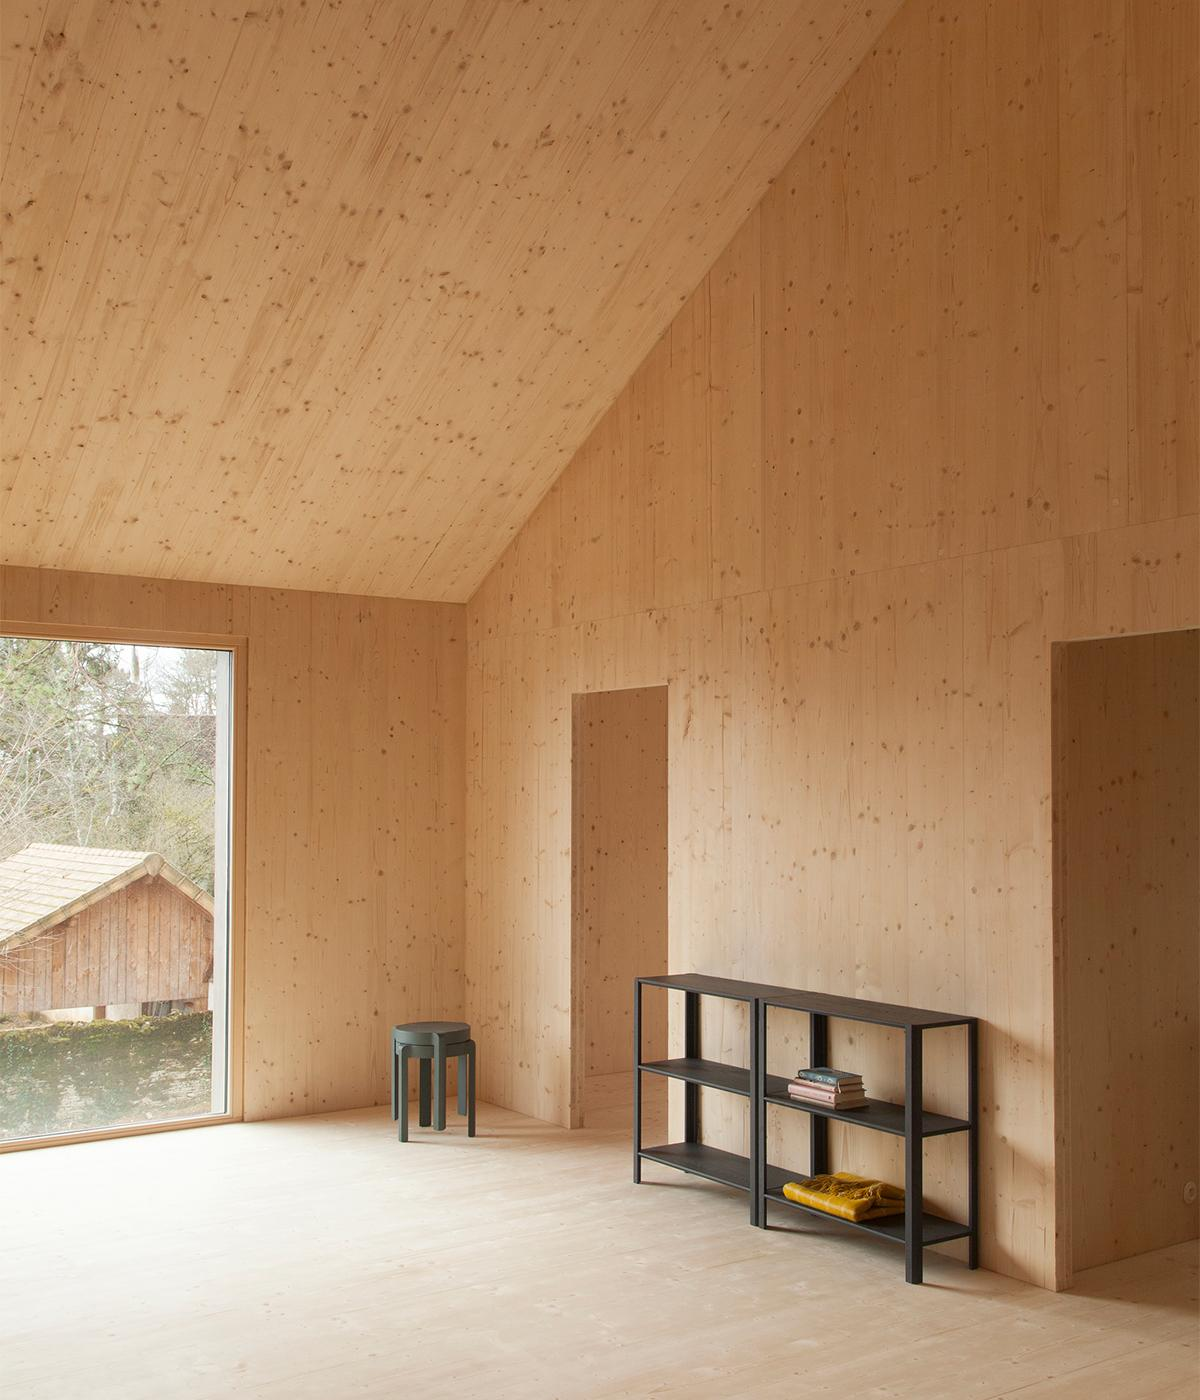 Minimalist furniture by Stattmann Neue Moebel inside Atelier ordinare's wood house prefab